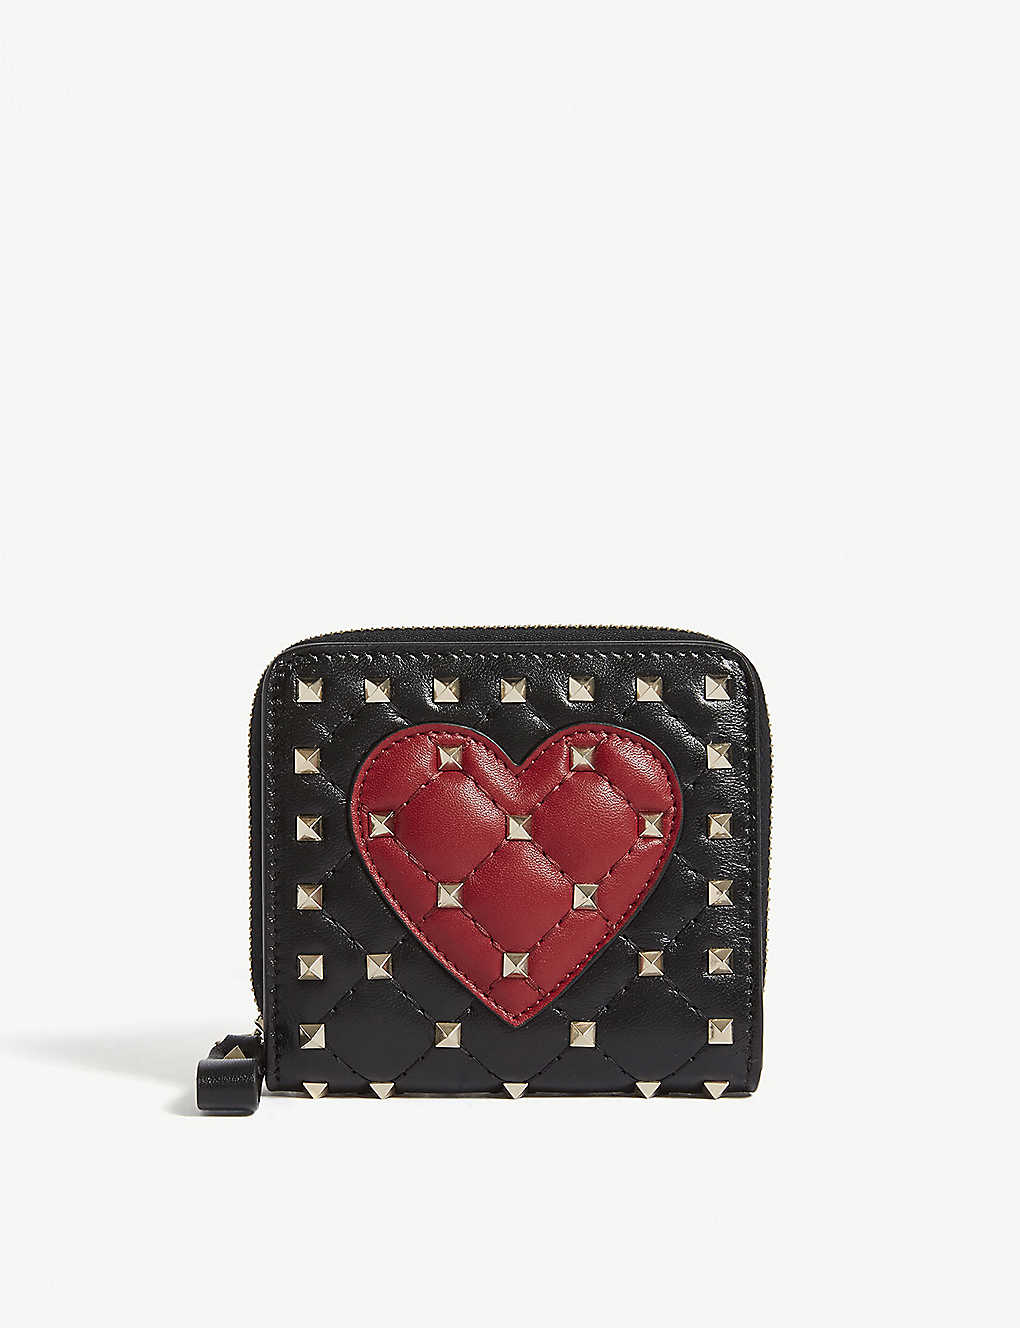 a3e4c915f24 VALENTINO - Rockstud heart quilted leather purse | Selfridges.com